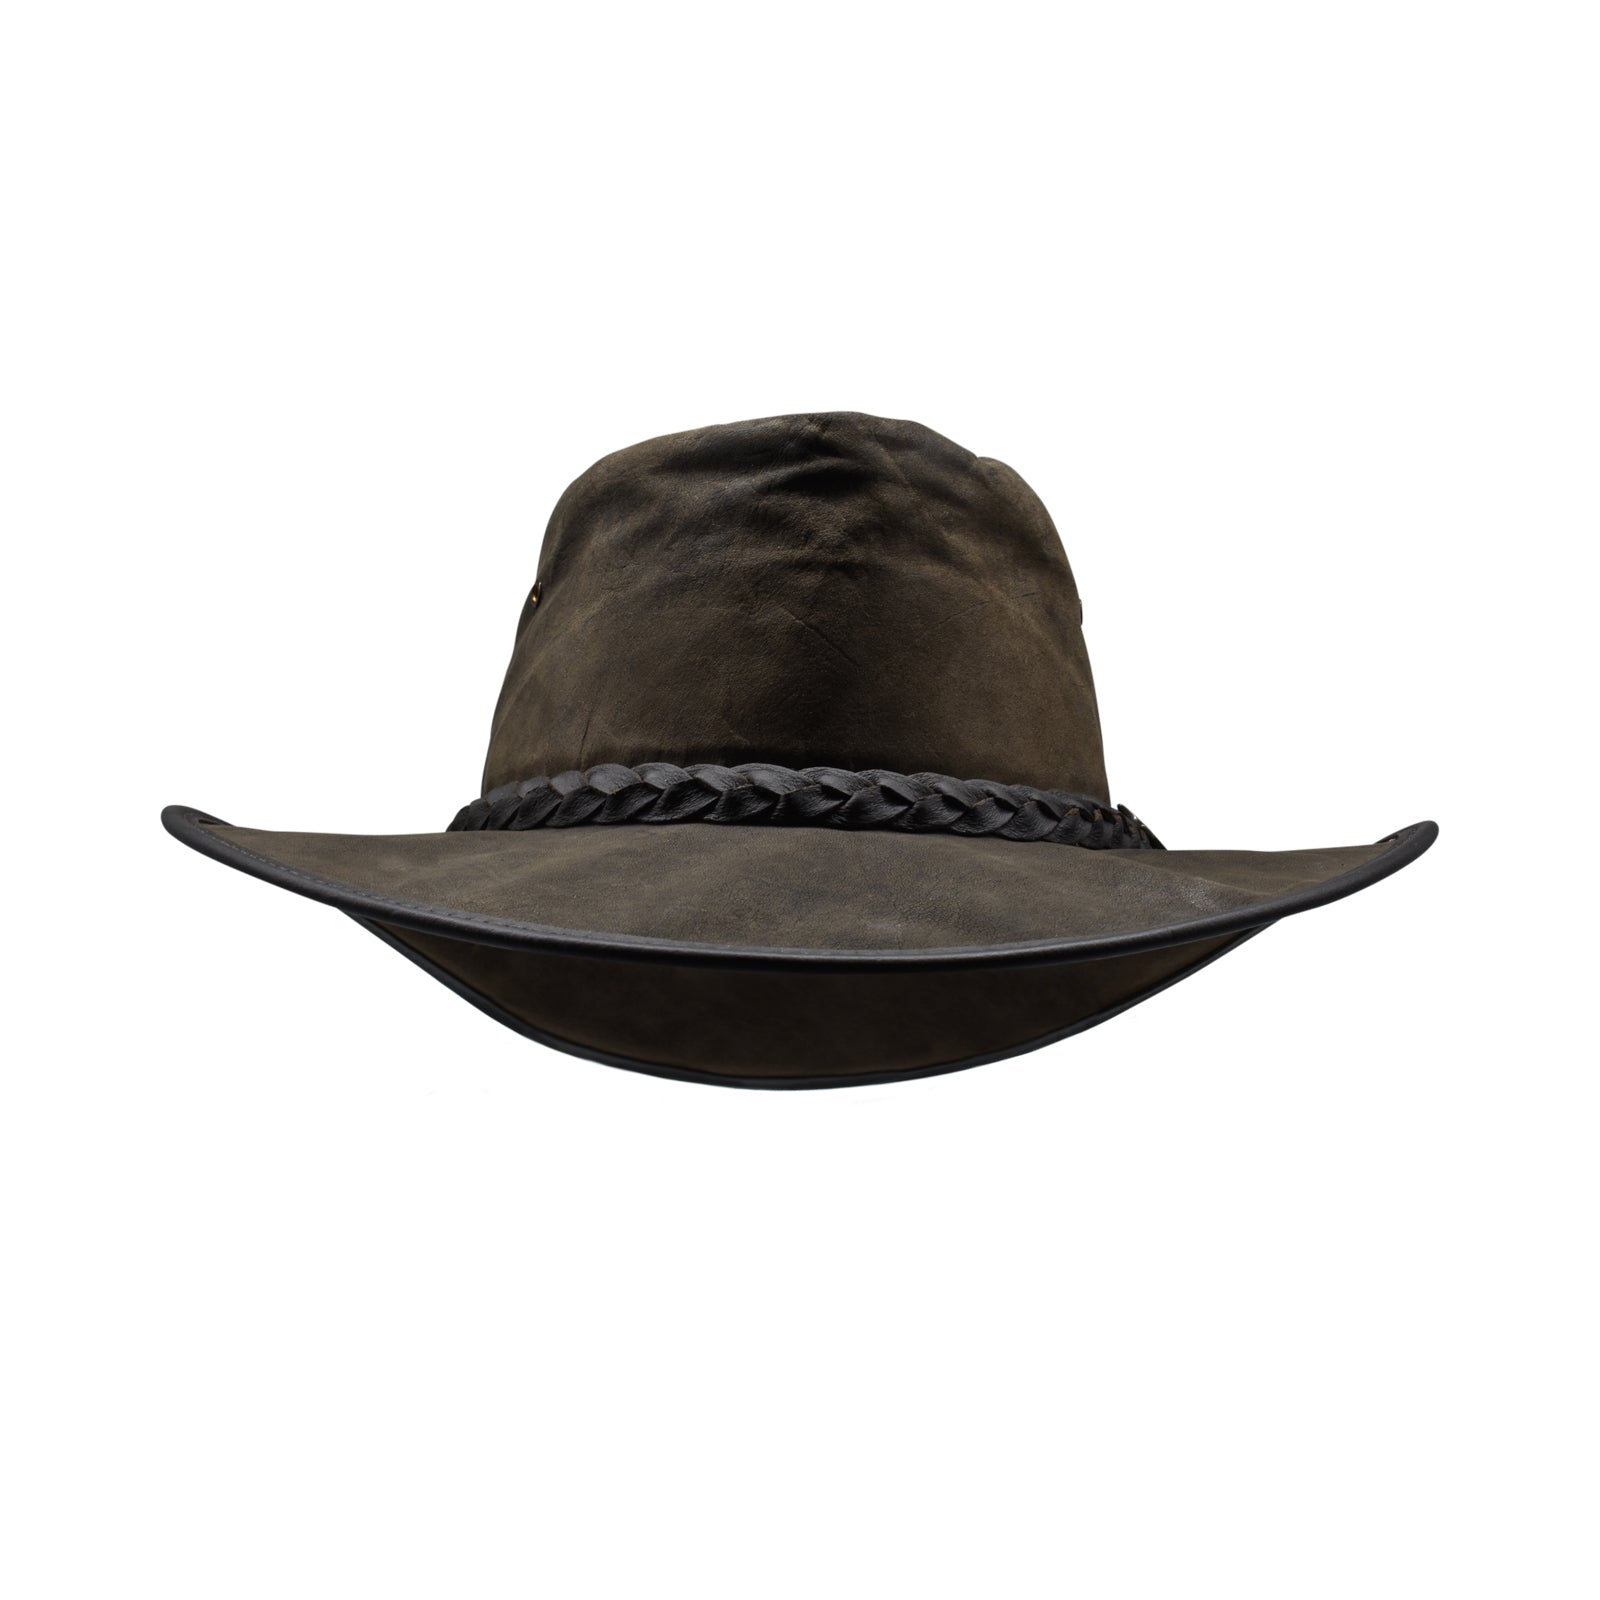 Kangaroo leather hat-Leather hat-Oz About Oz